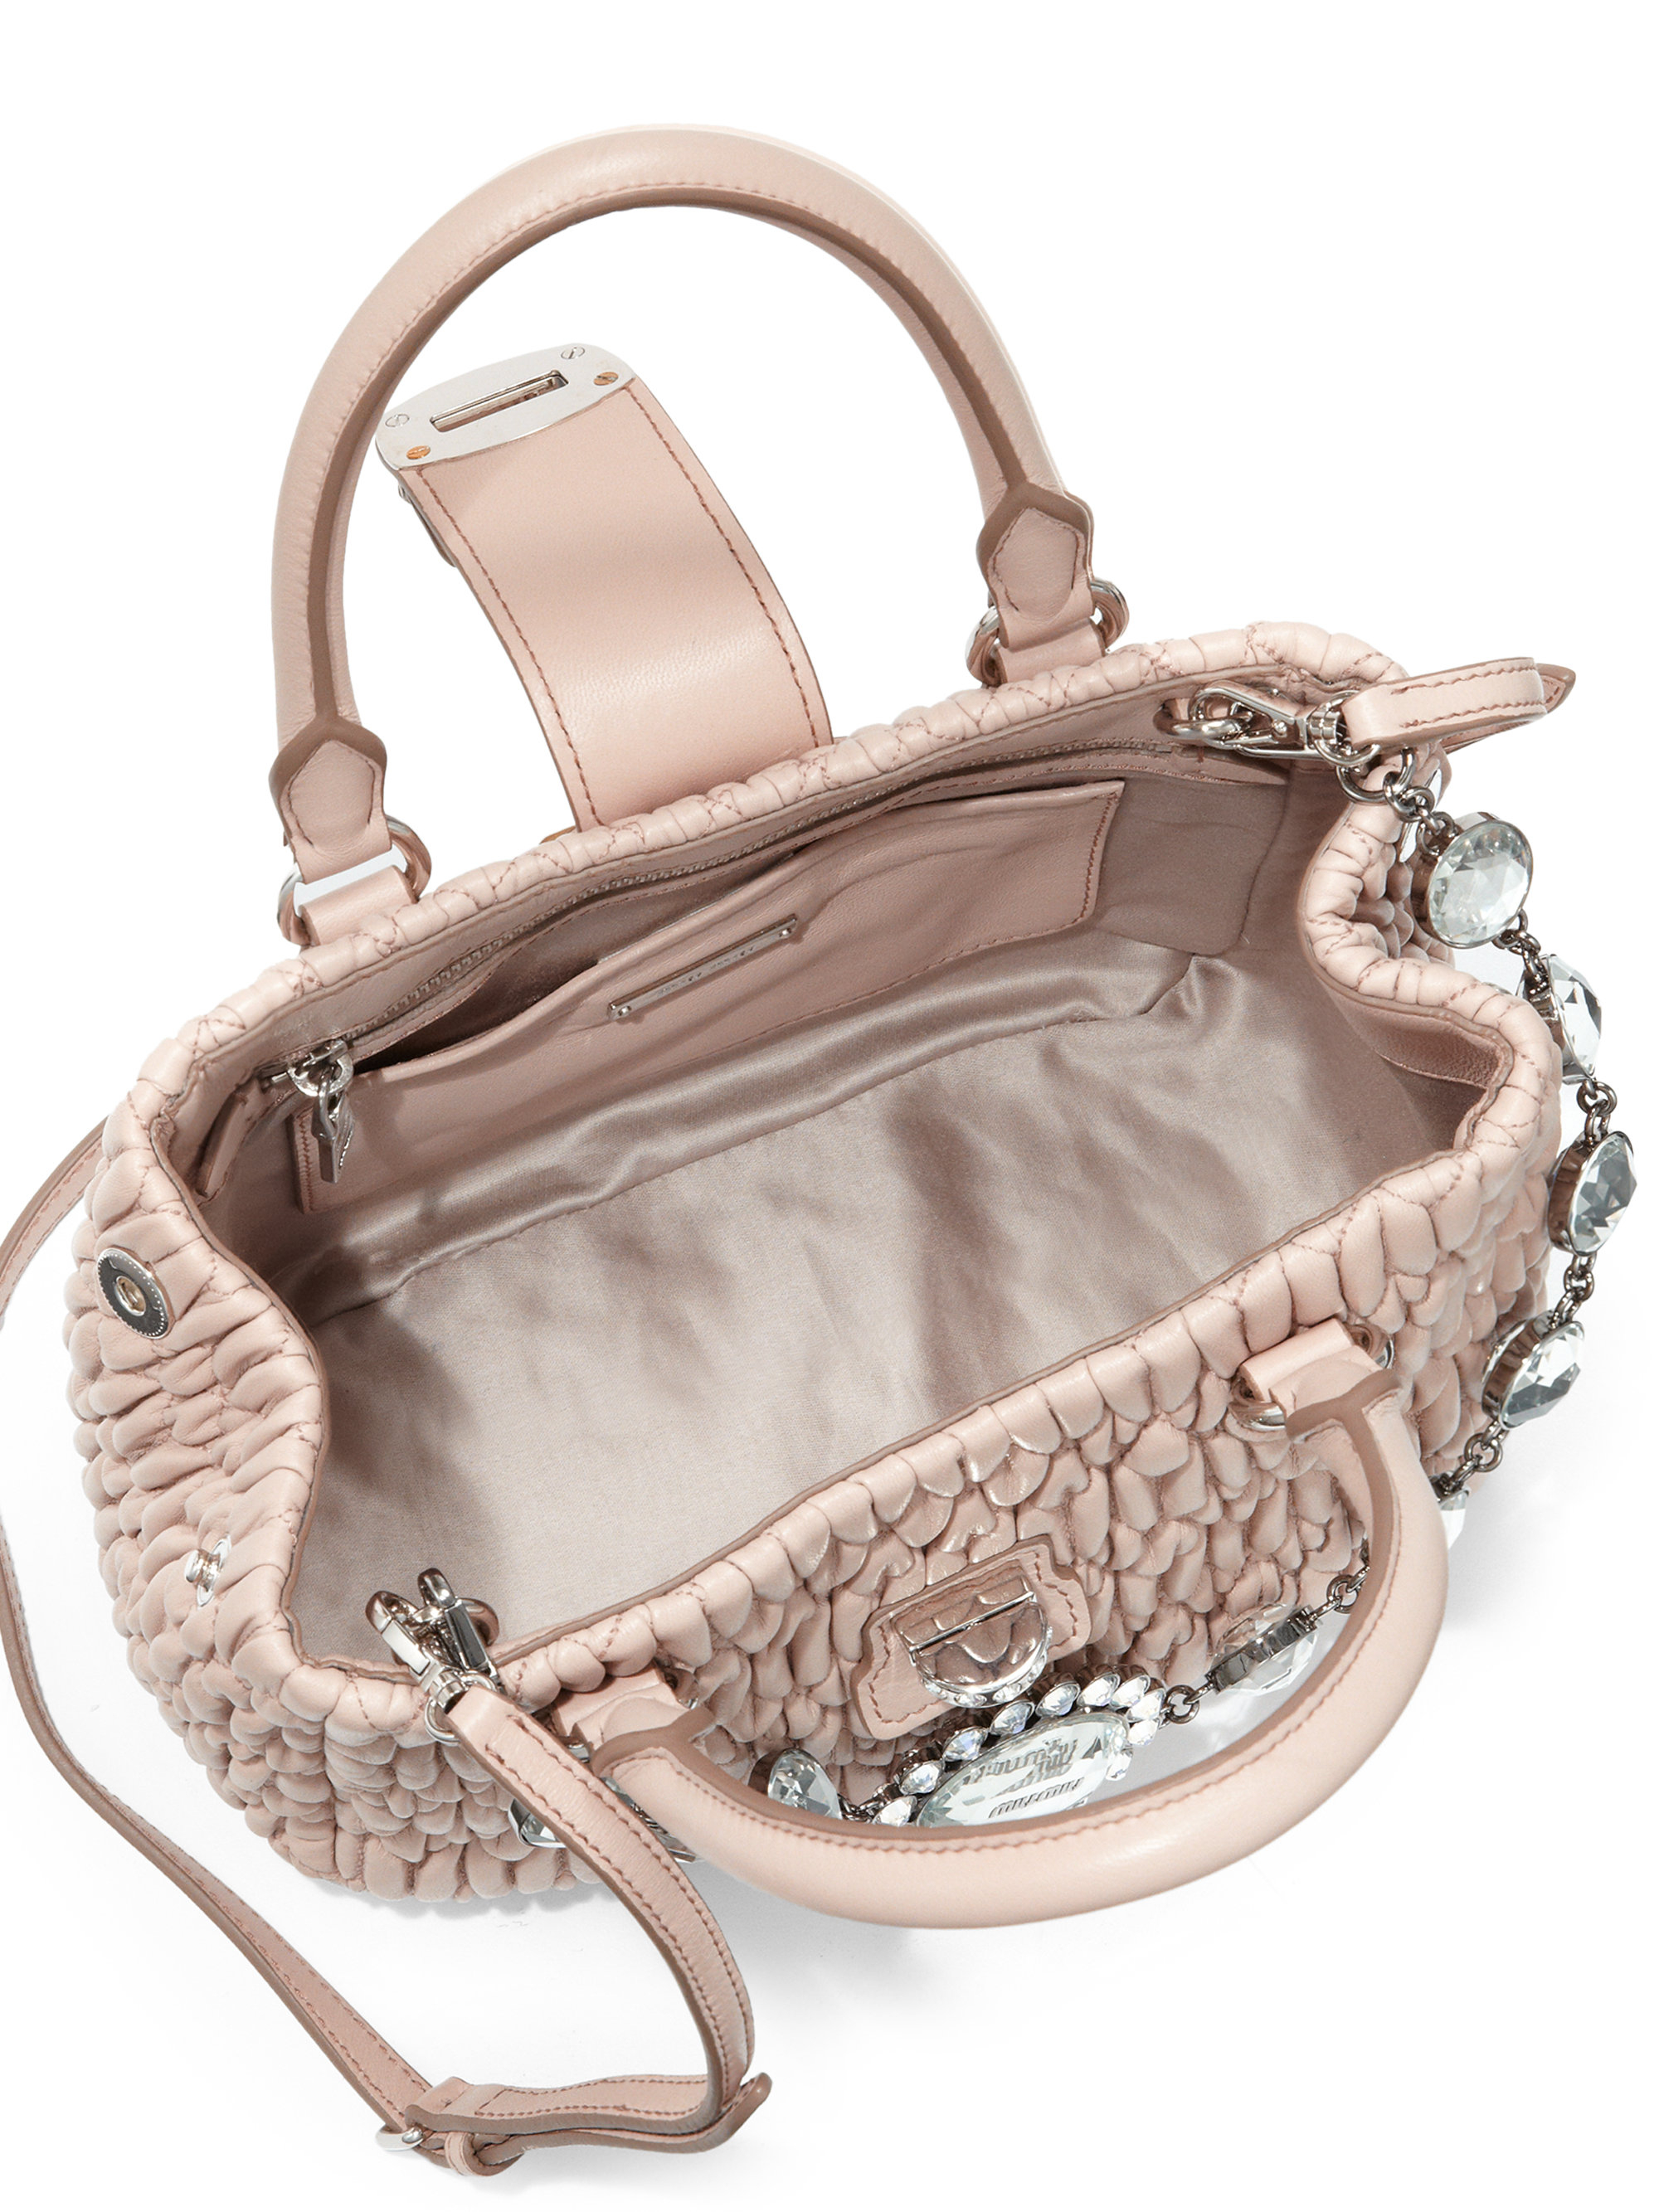 Lyst - Miu Miu Matelasse Quilted Leather Bucket Bag in Natural 02d9b07e5c110